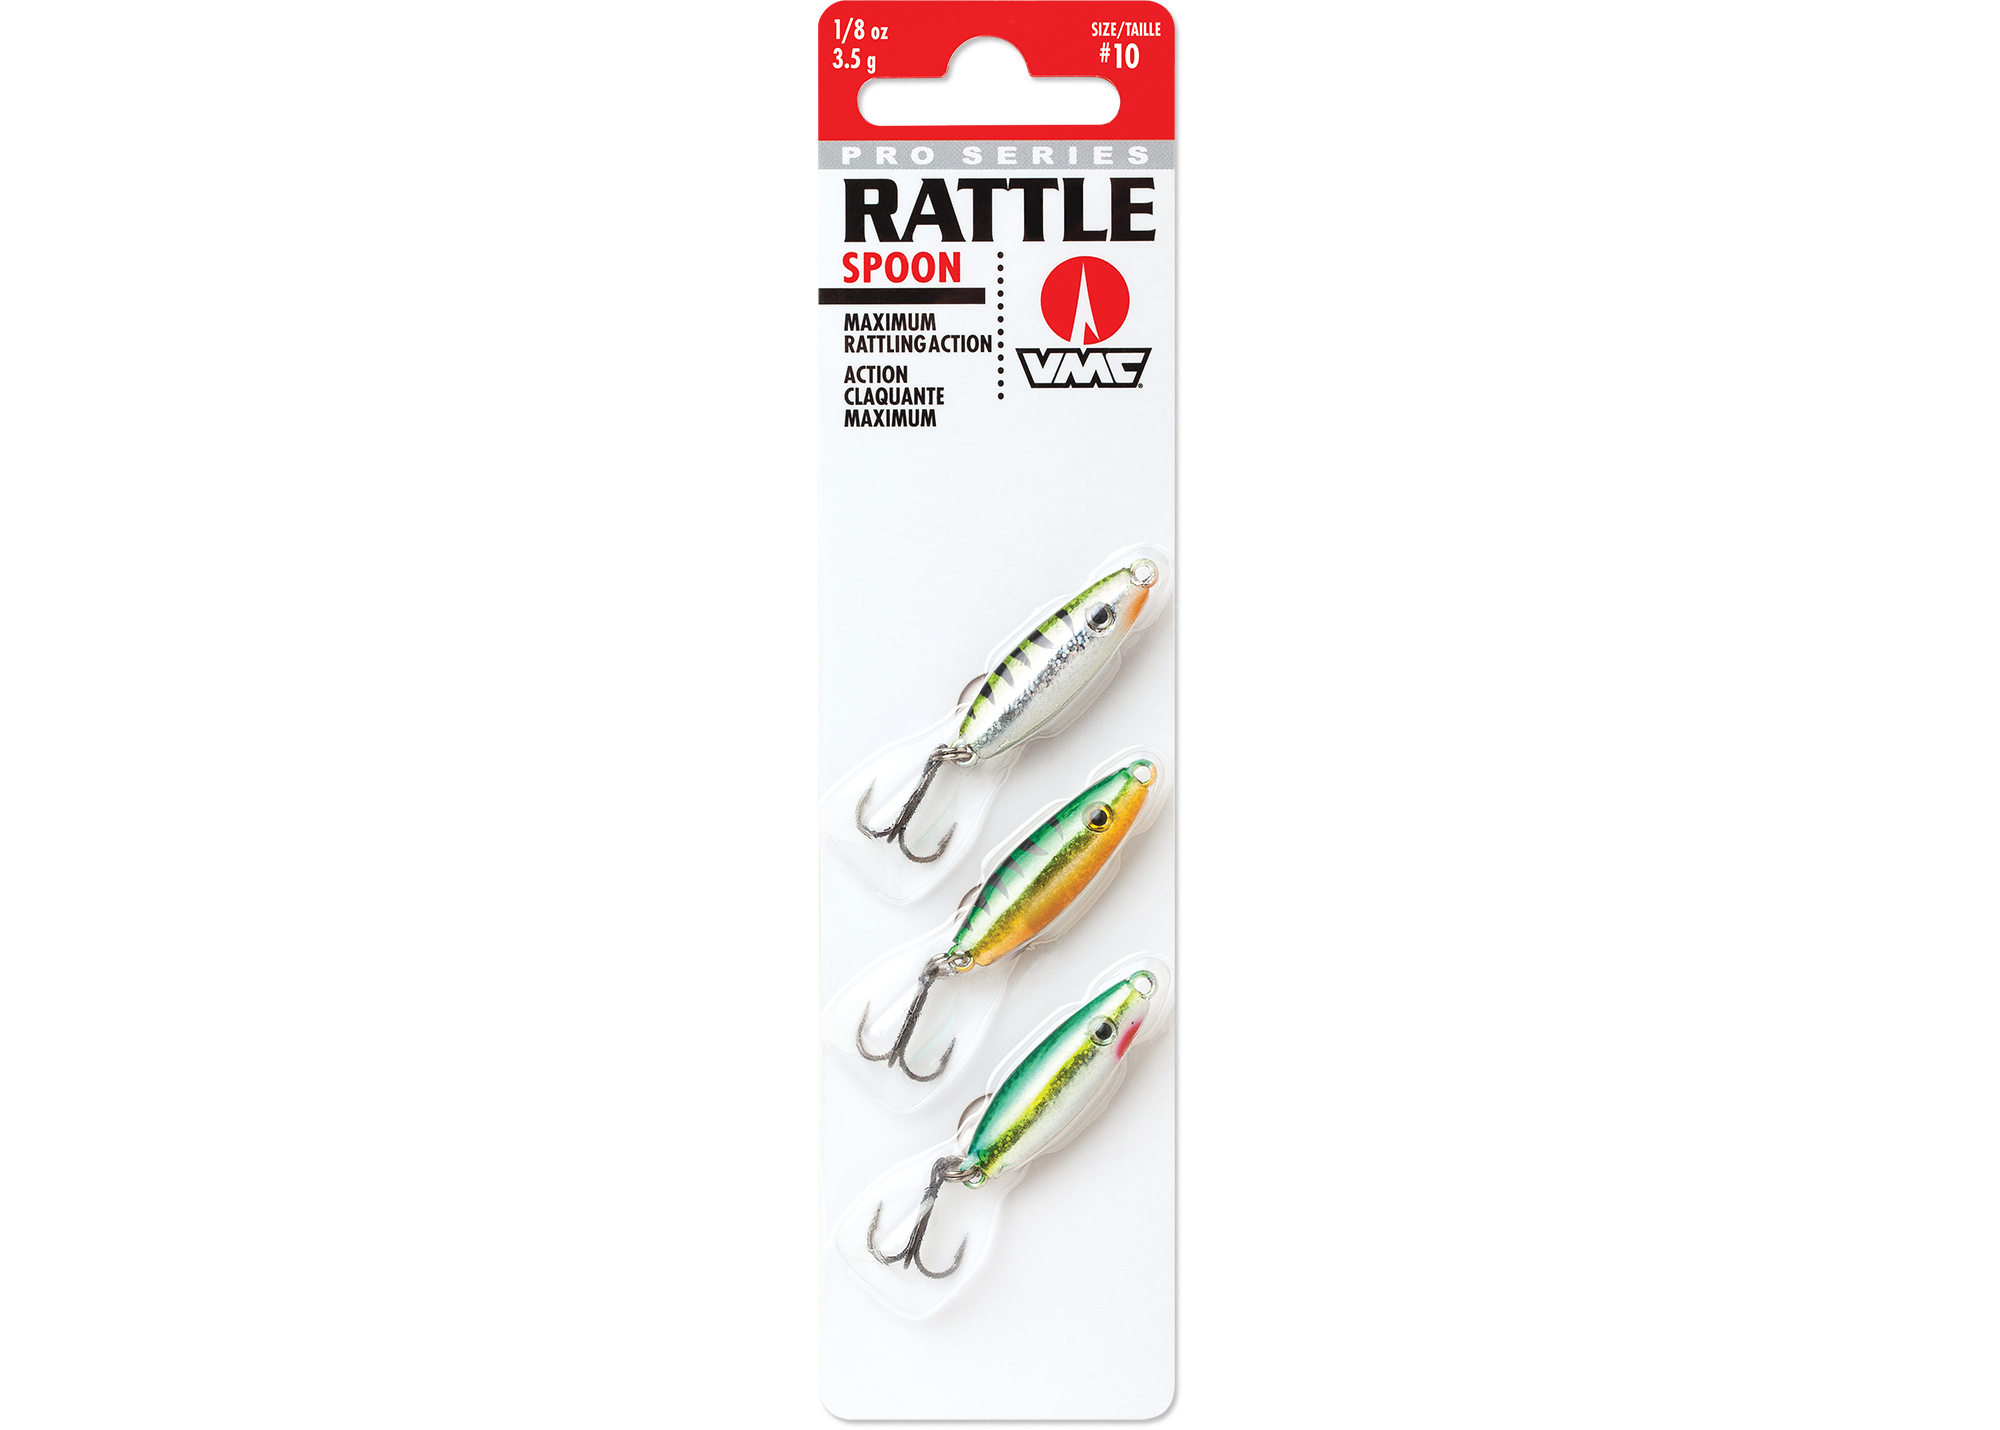 Rattle Spoon Kit Live